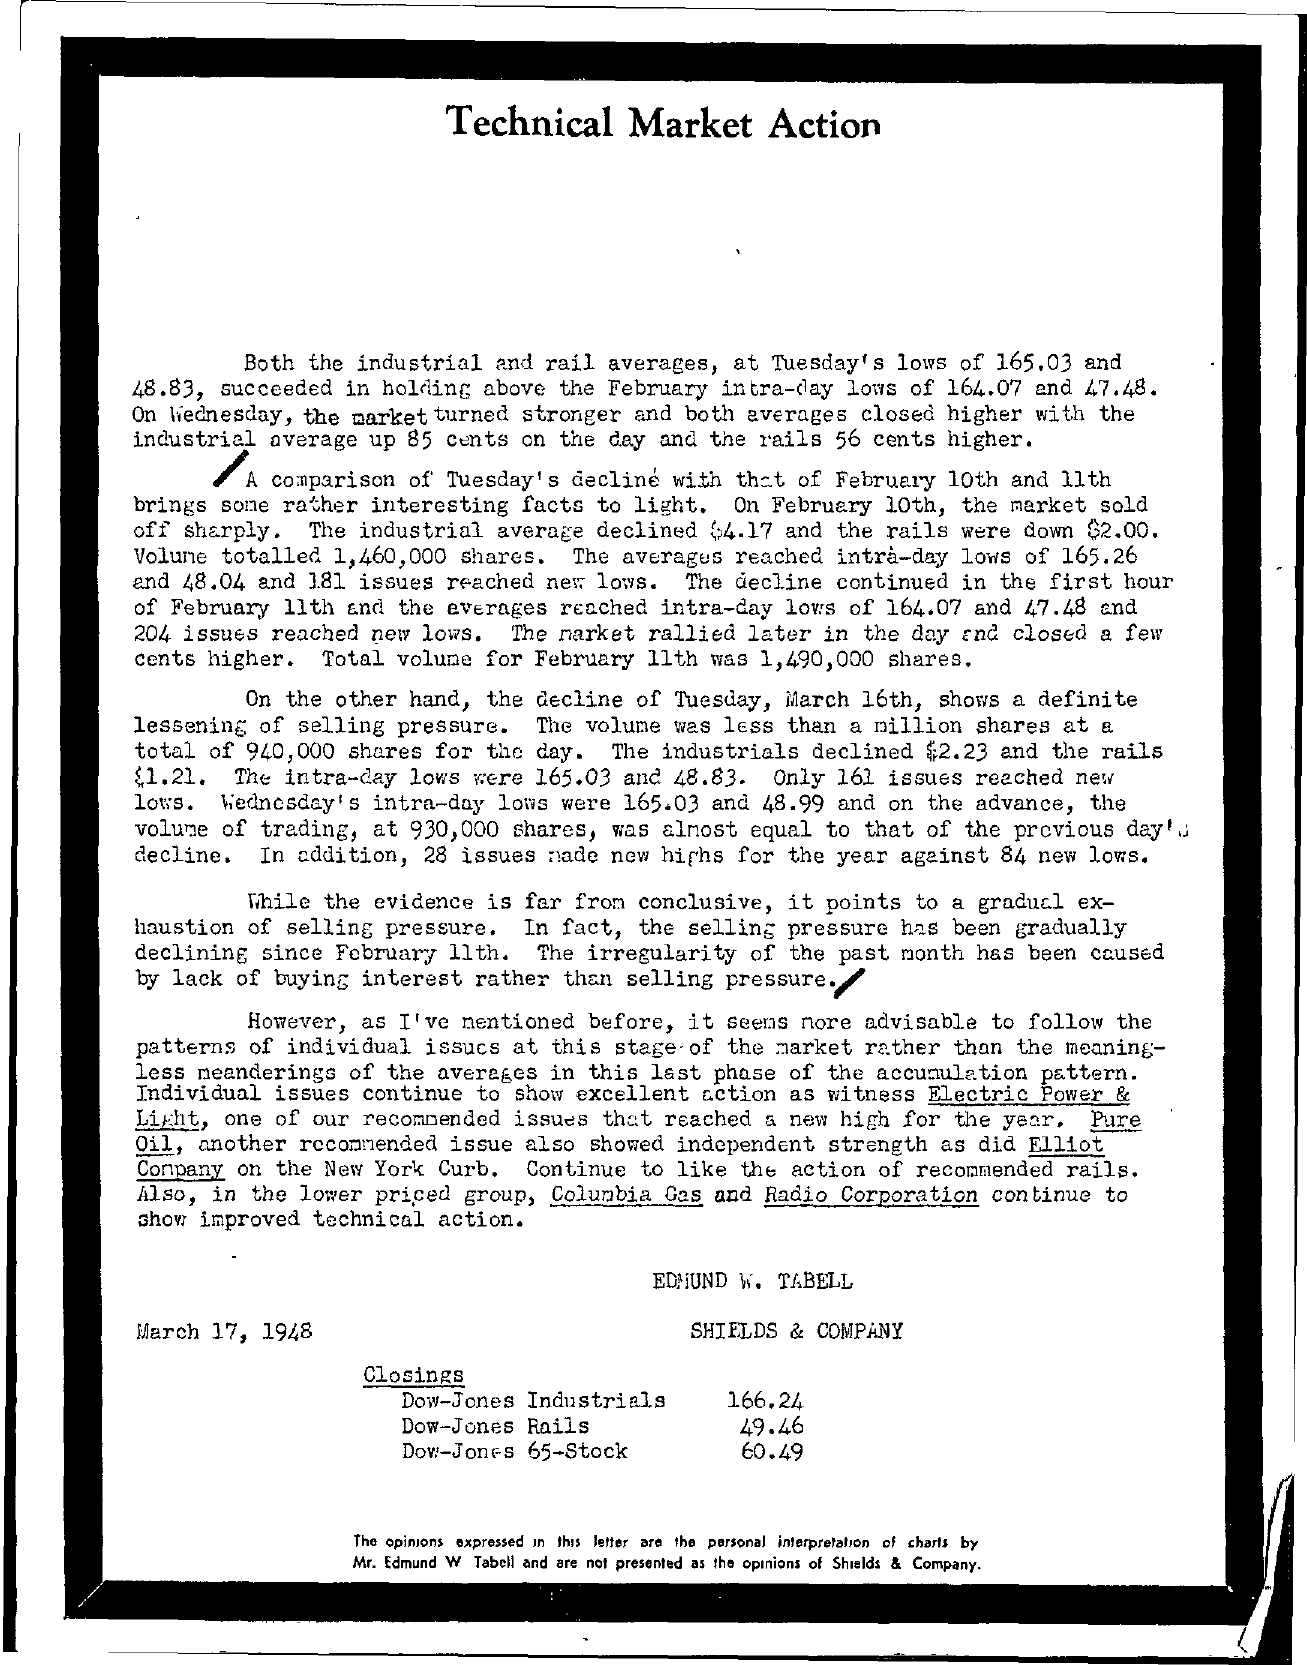 Tabell's Market Letter - March 17, 1948